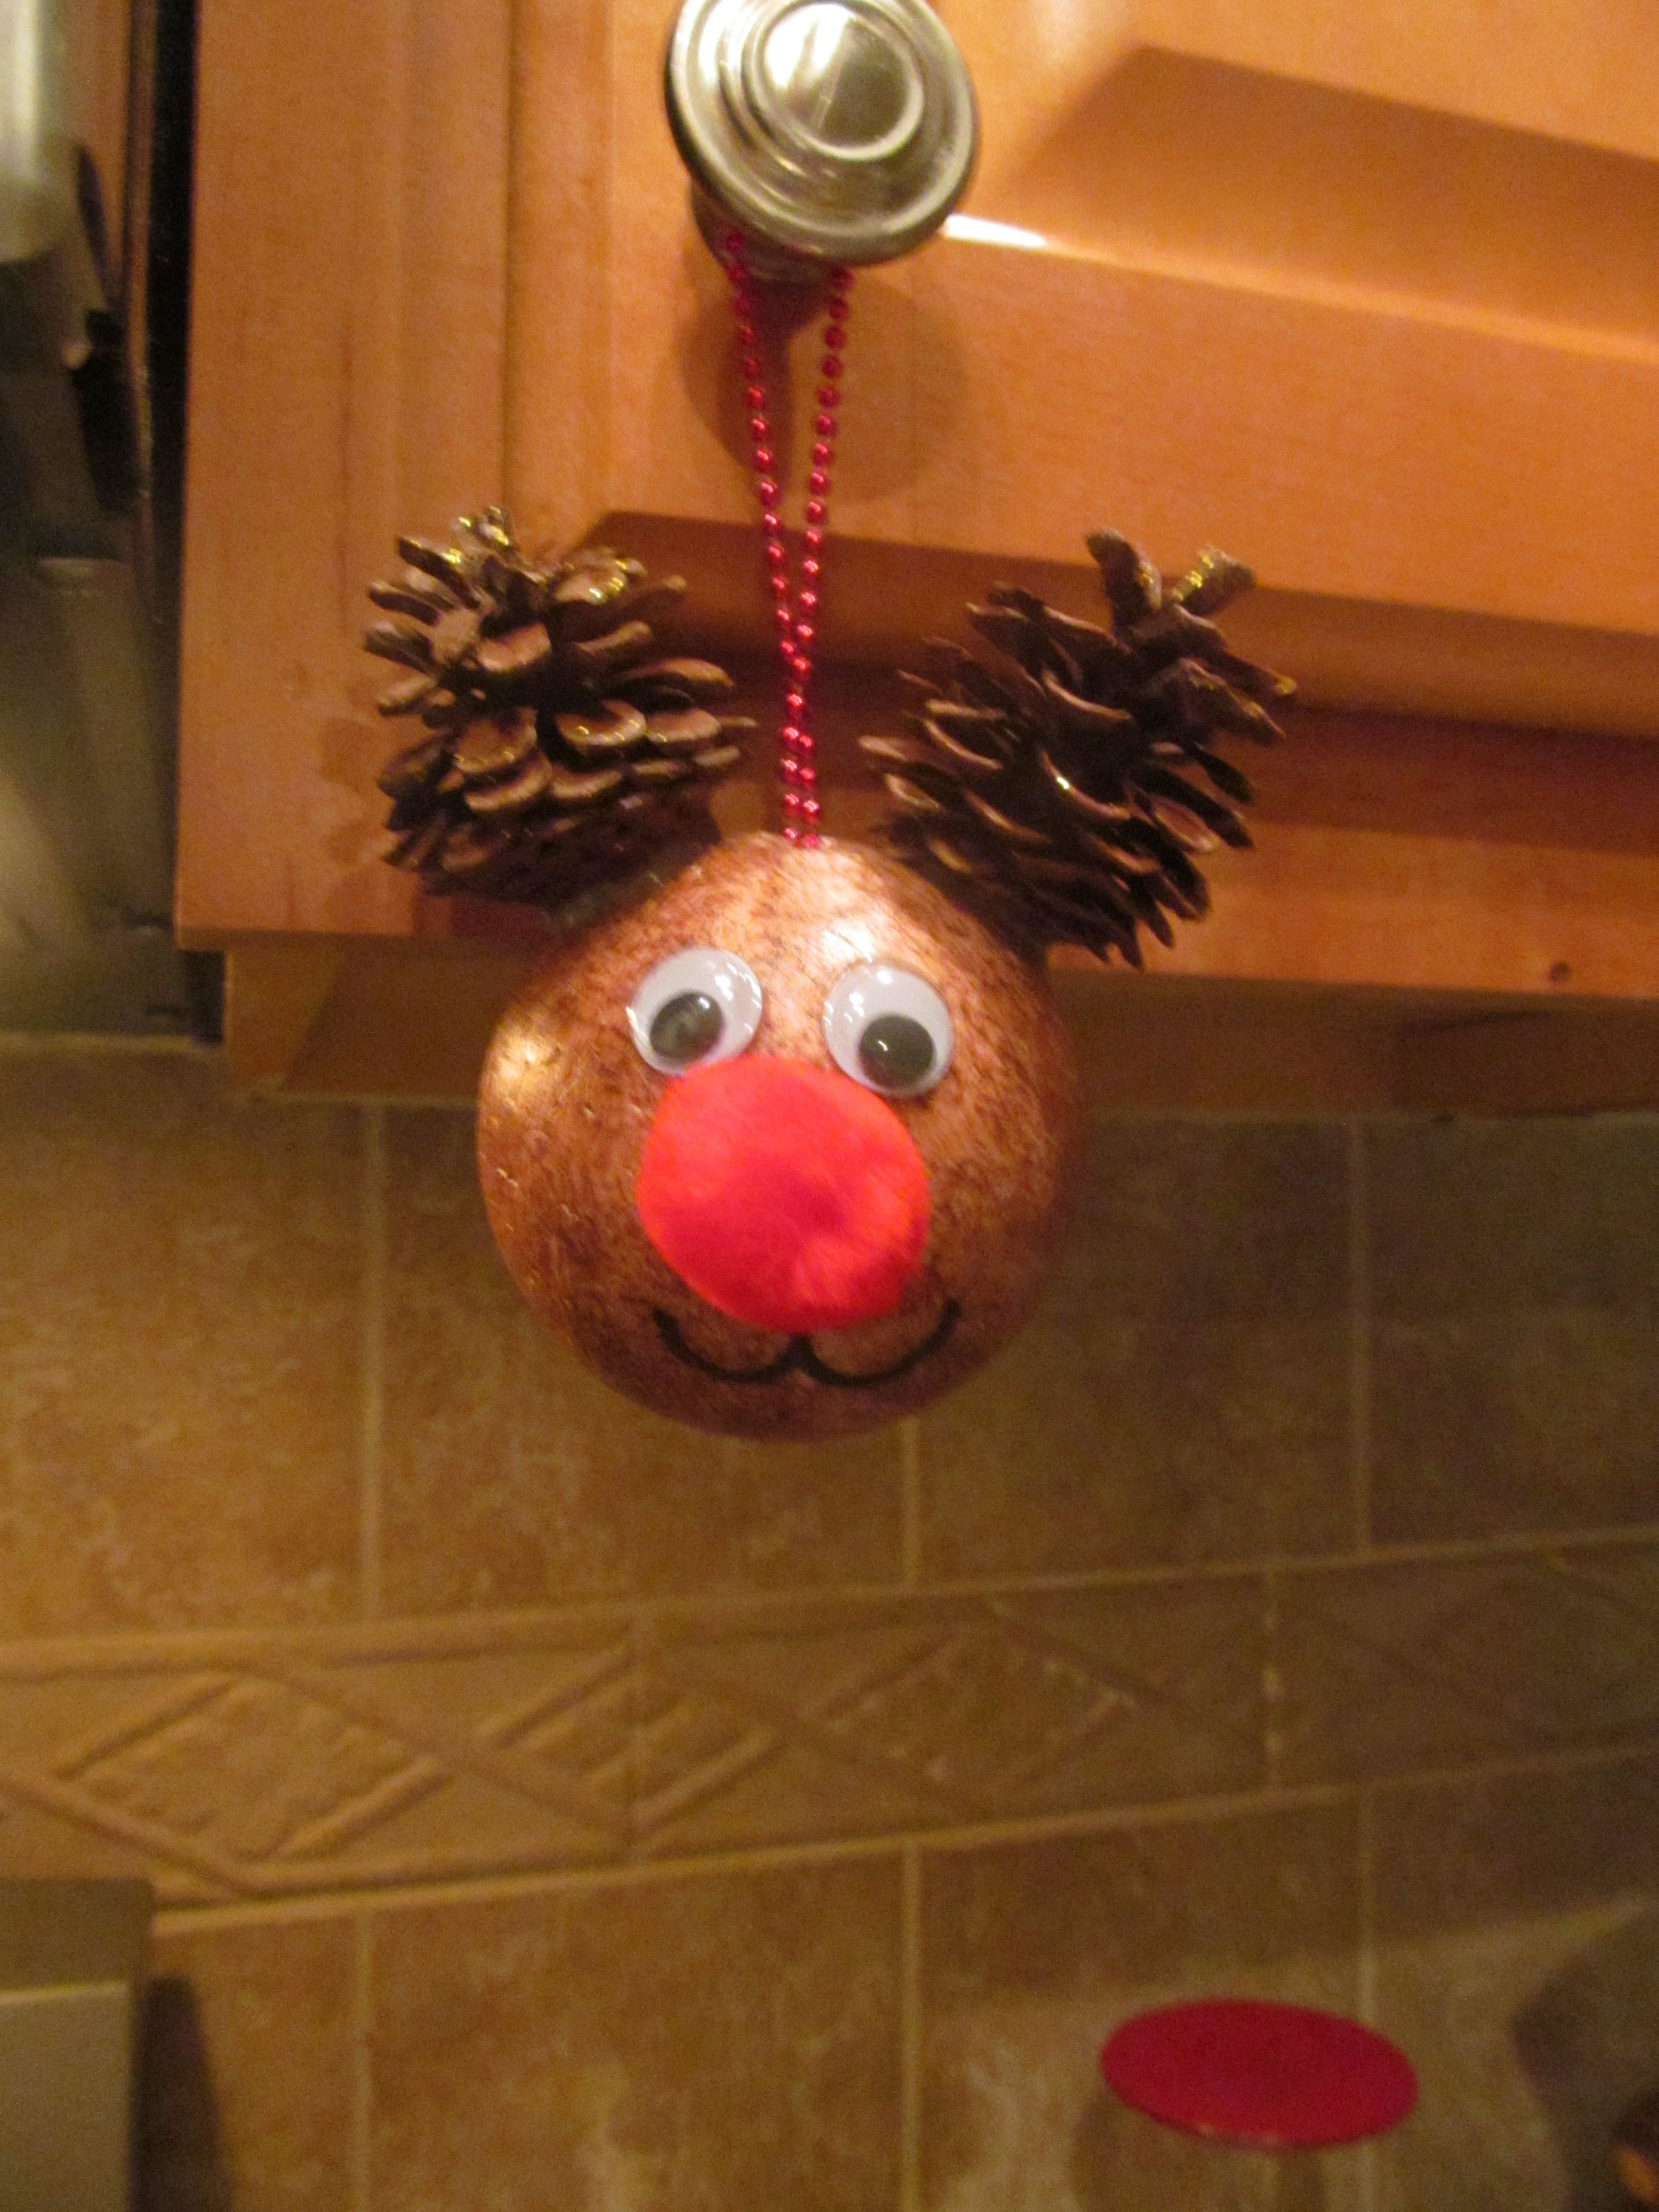 Reindeer ornament made from styrofoam ball painted brown googly